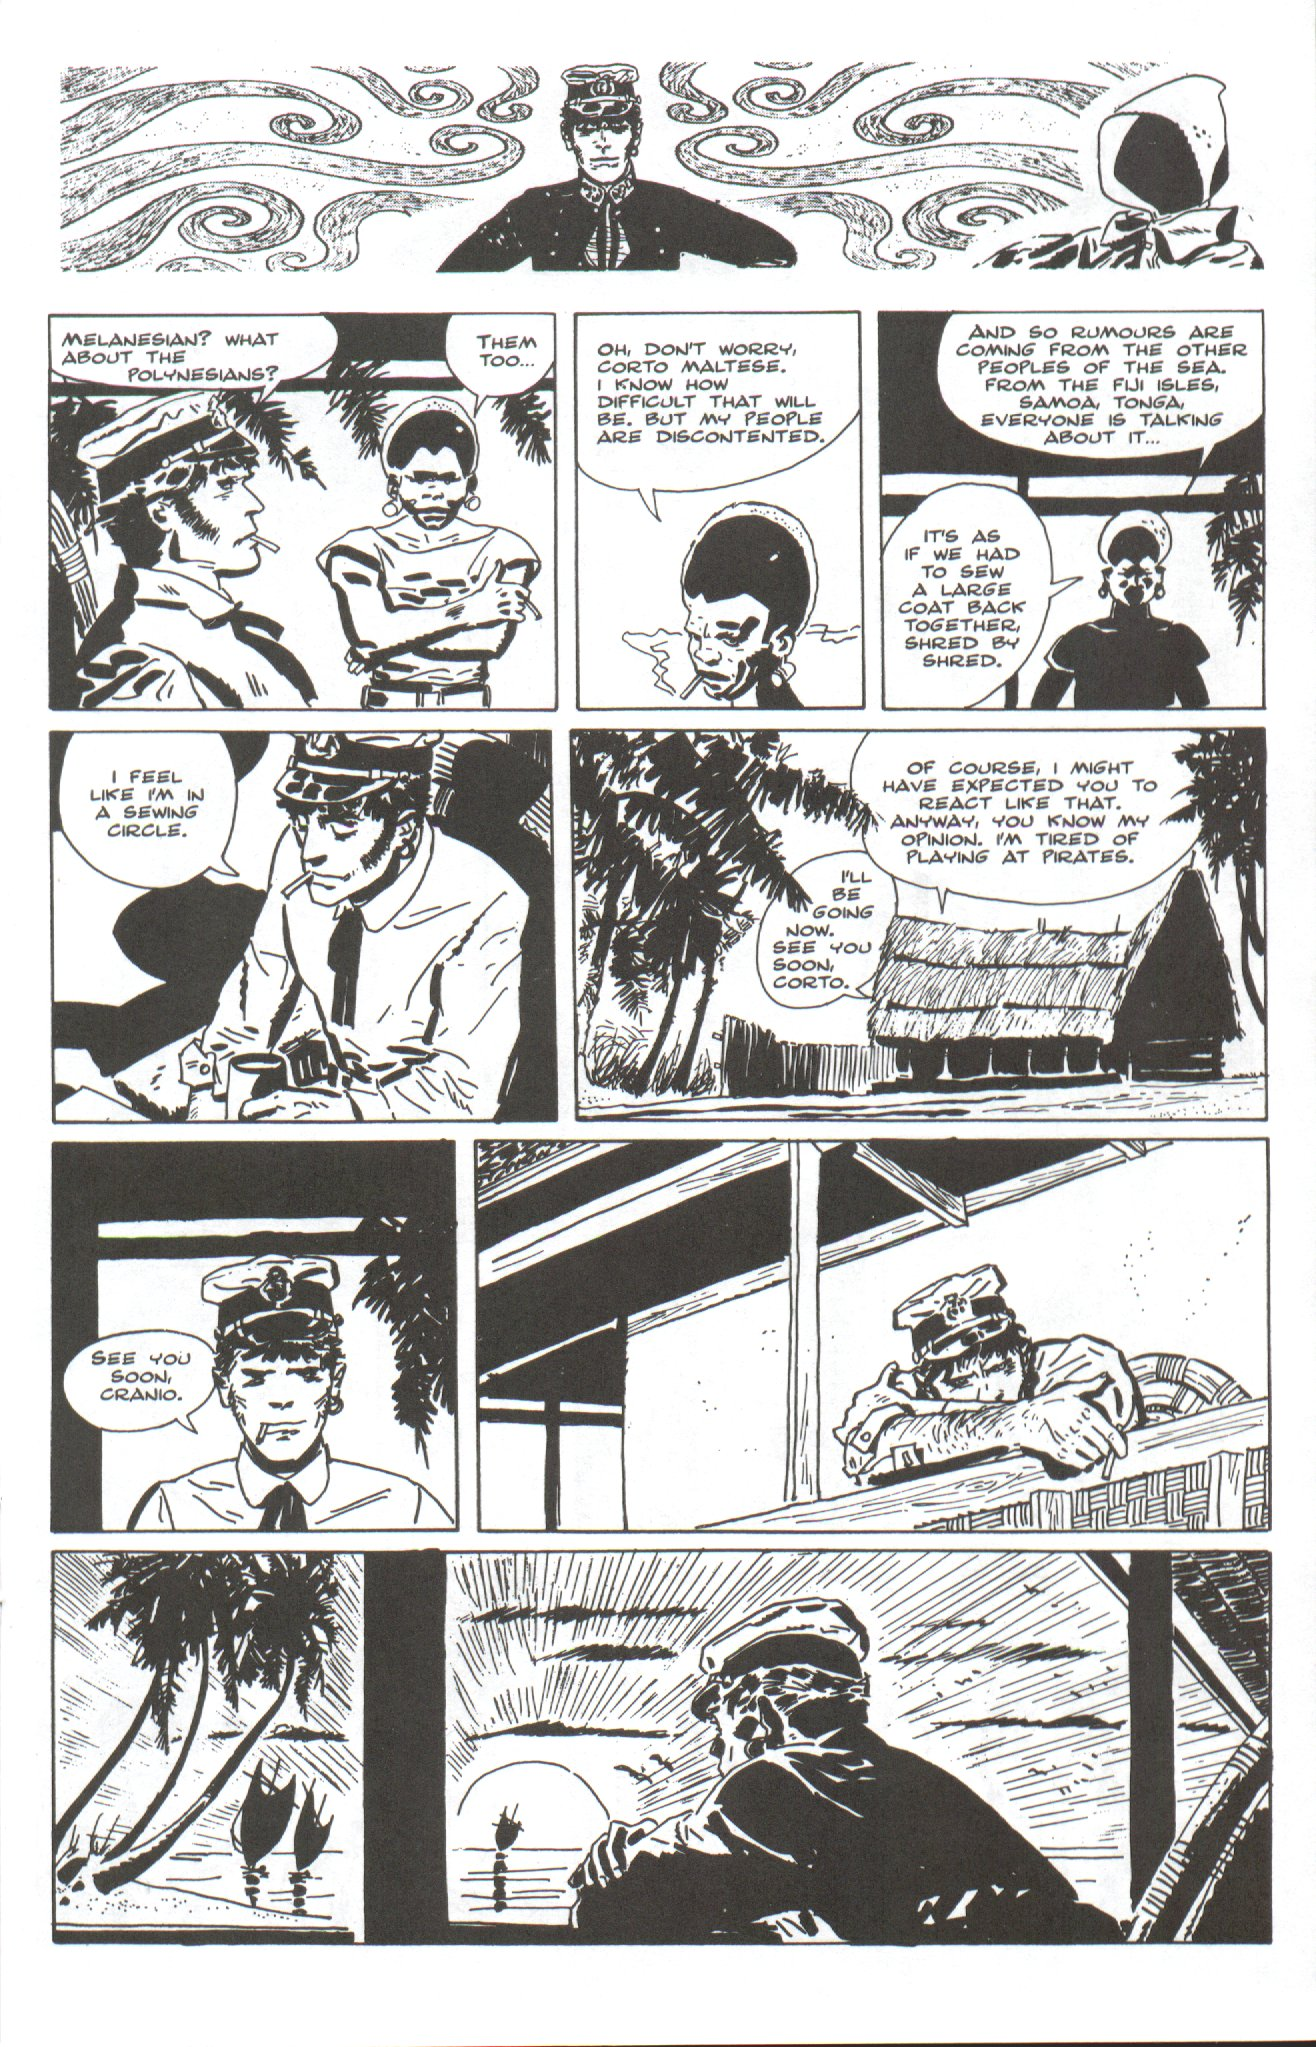 Corto Maltese Ballad of the Salt Sea Issue 4 | Viewcomic